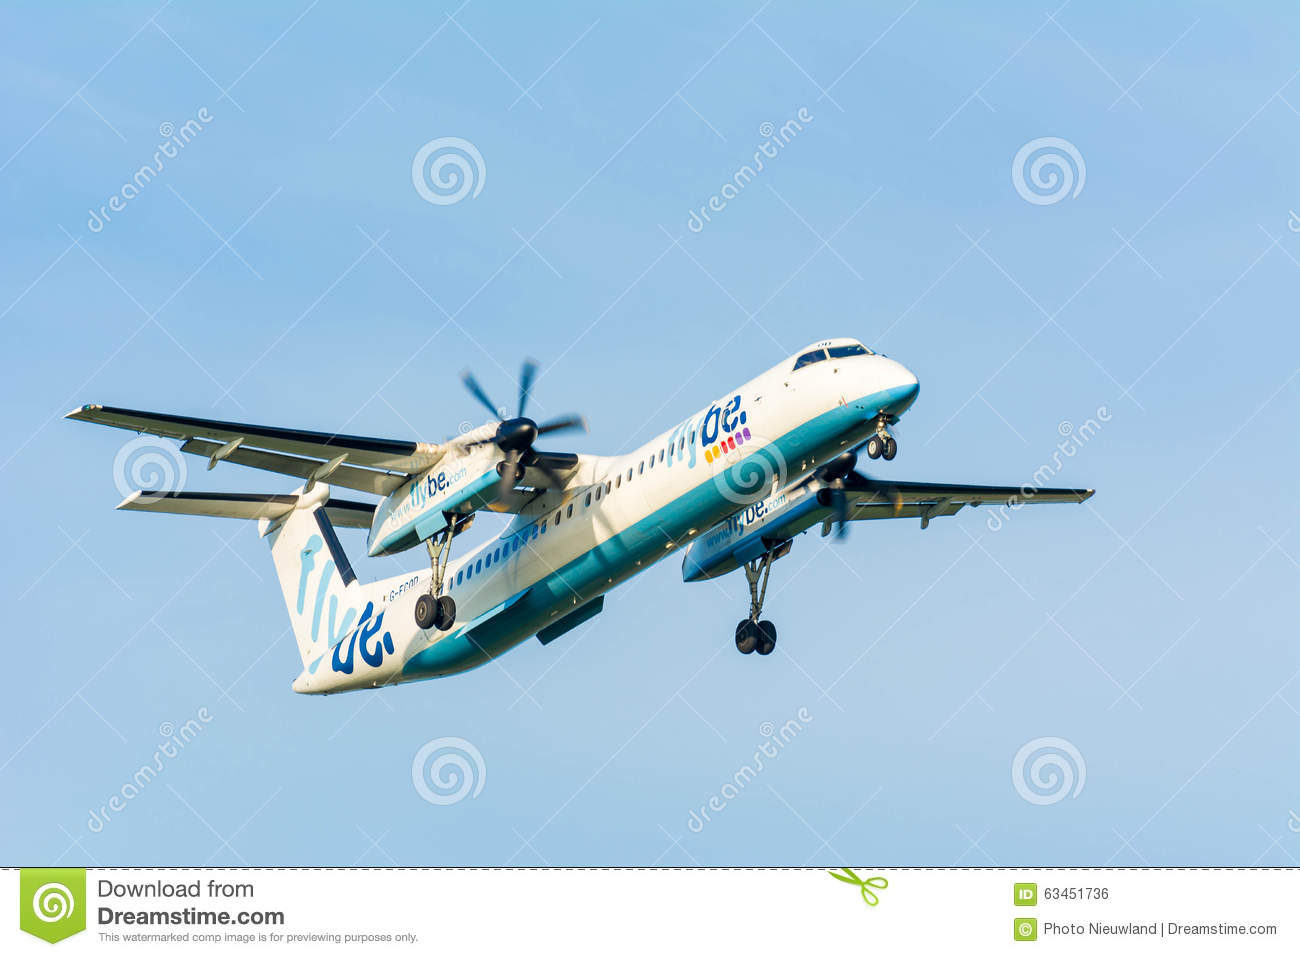 Schiphol, Noord-Holland/Netherlands- October 26-10-2015 -Plane from Flybe  De Havilland Canada G-ECOD DHC-8-400 is landing at Schiphol airport.